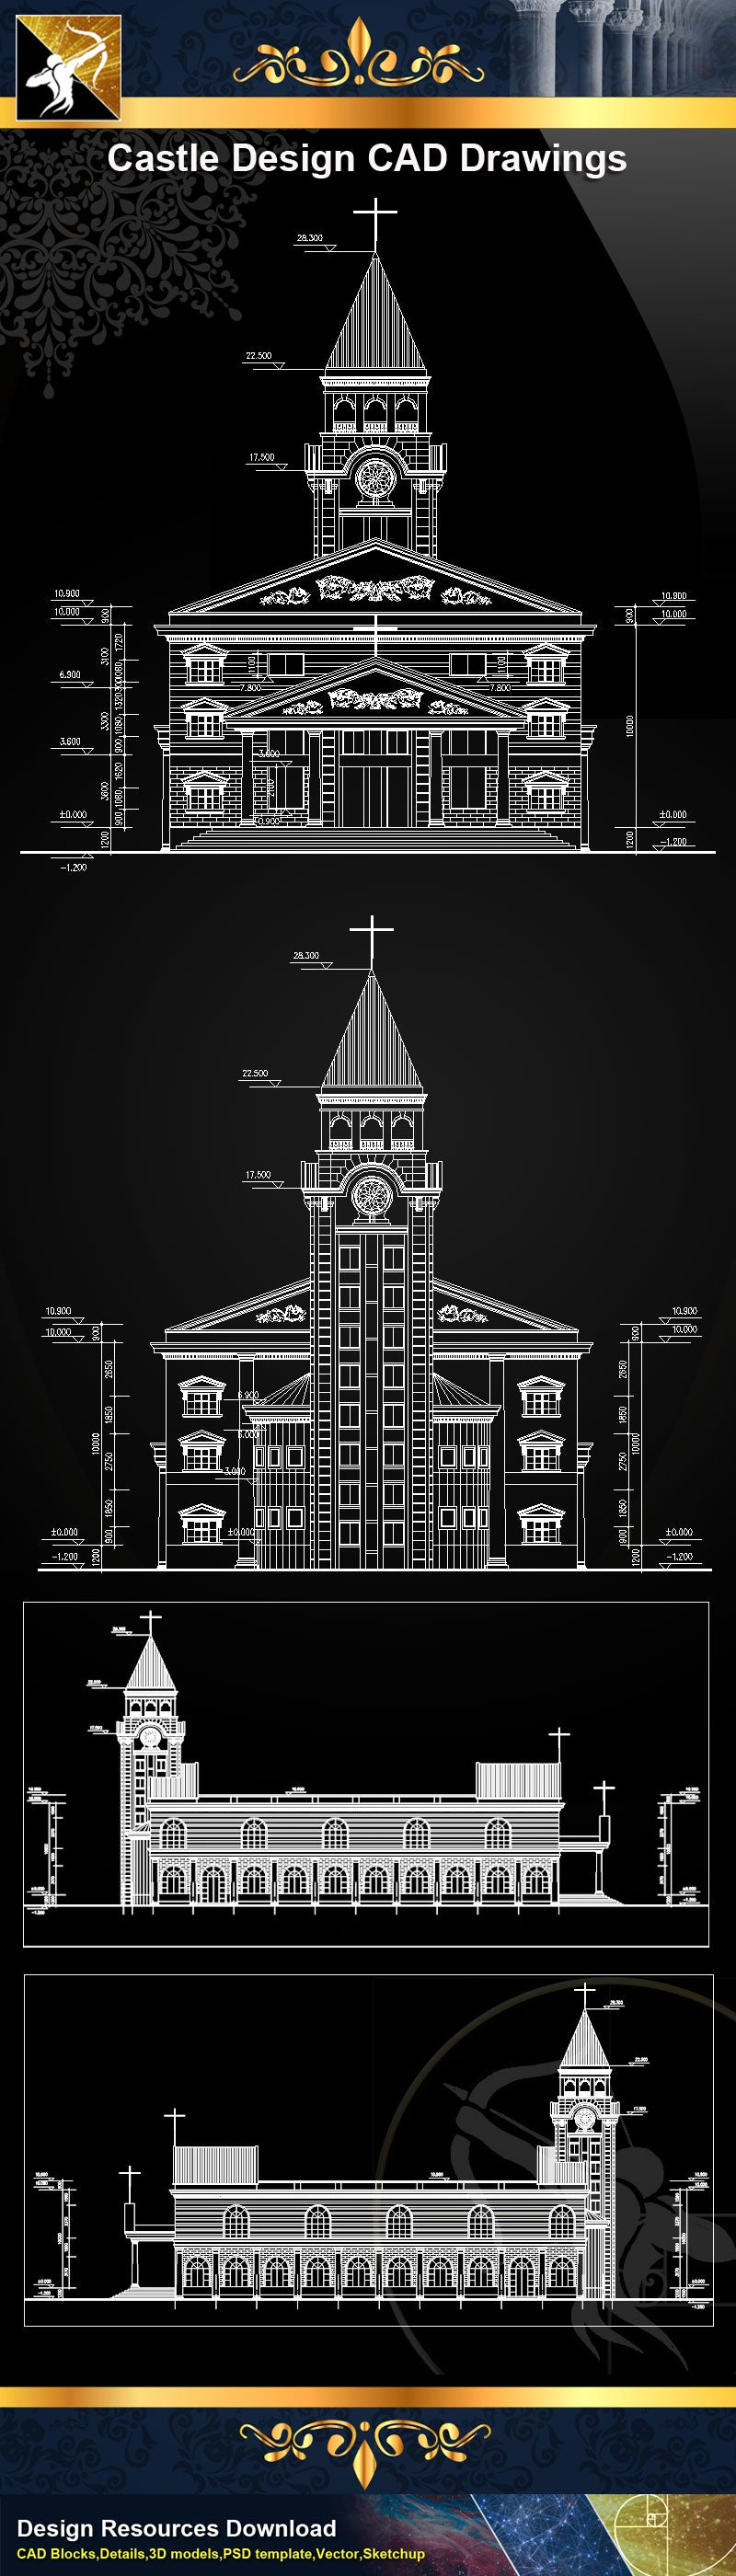 Church Elevation Plan : Church design cad drawings